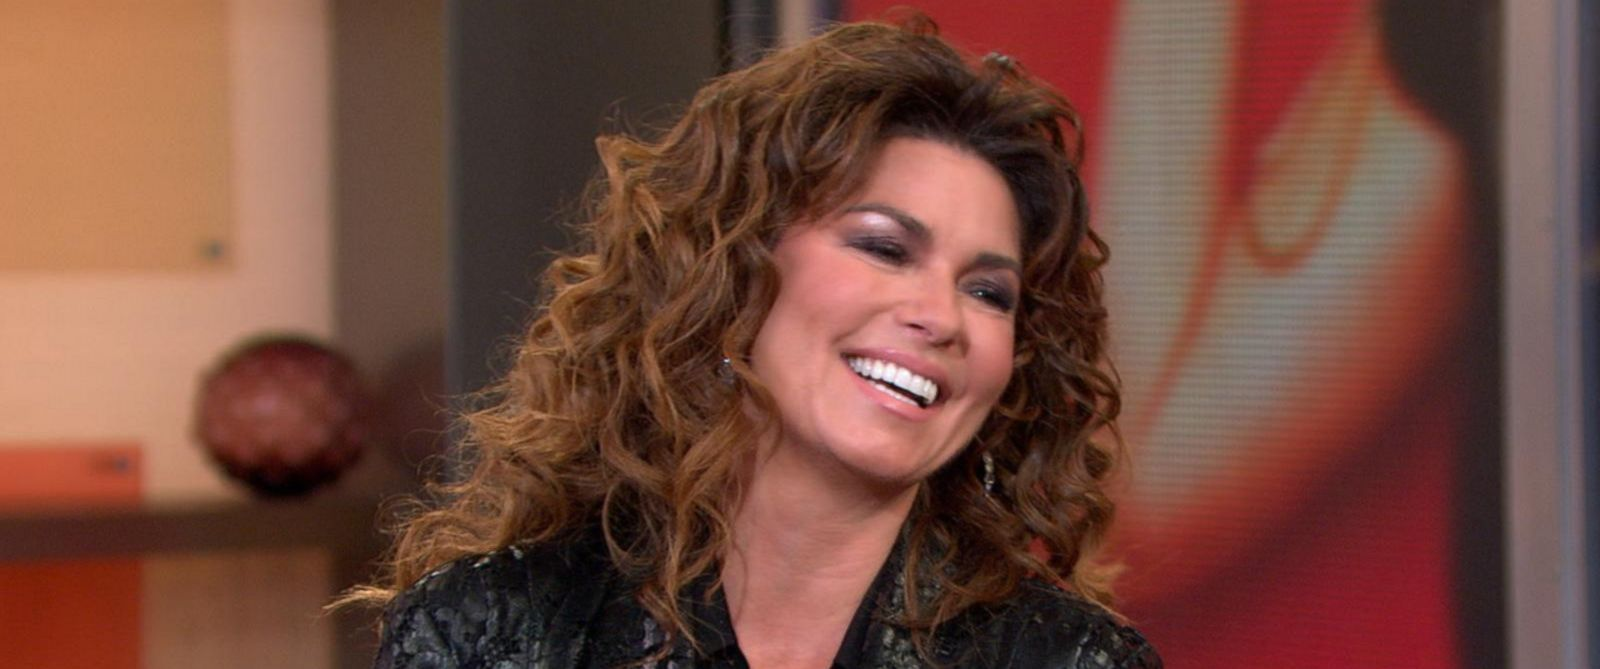 PHOTO: Shania Twain announces her farewell tour on Good Morning America, March 4, 2015.